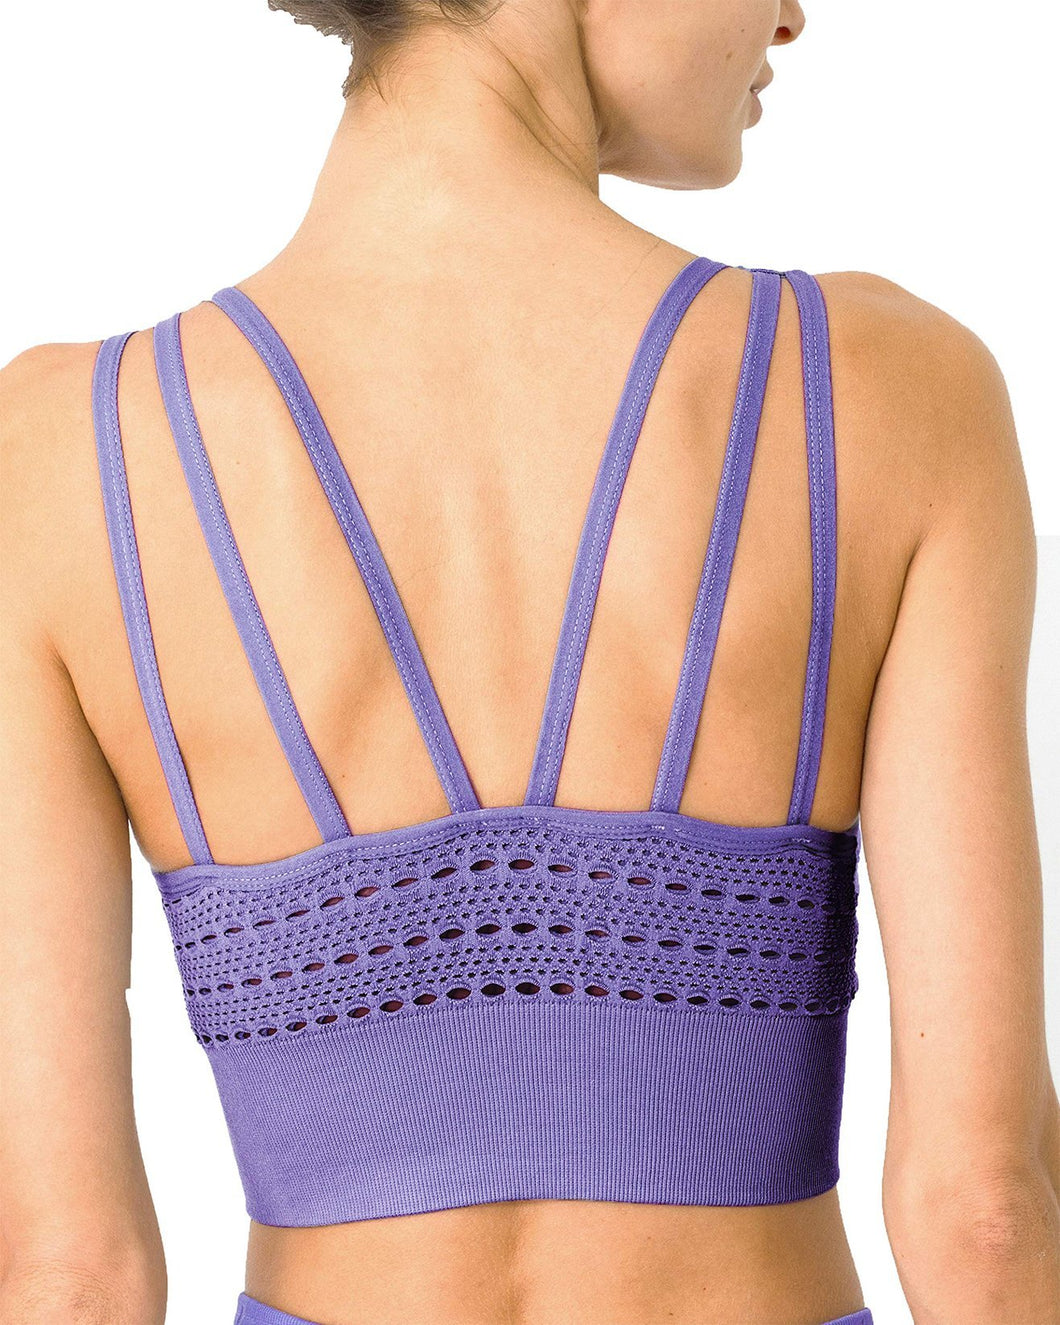 Mesh Seamless Bra With Cutouts - Purple - OzMe.com.au